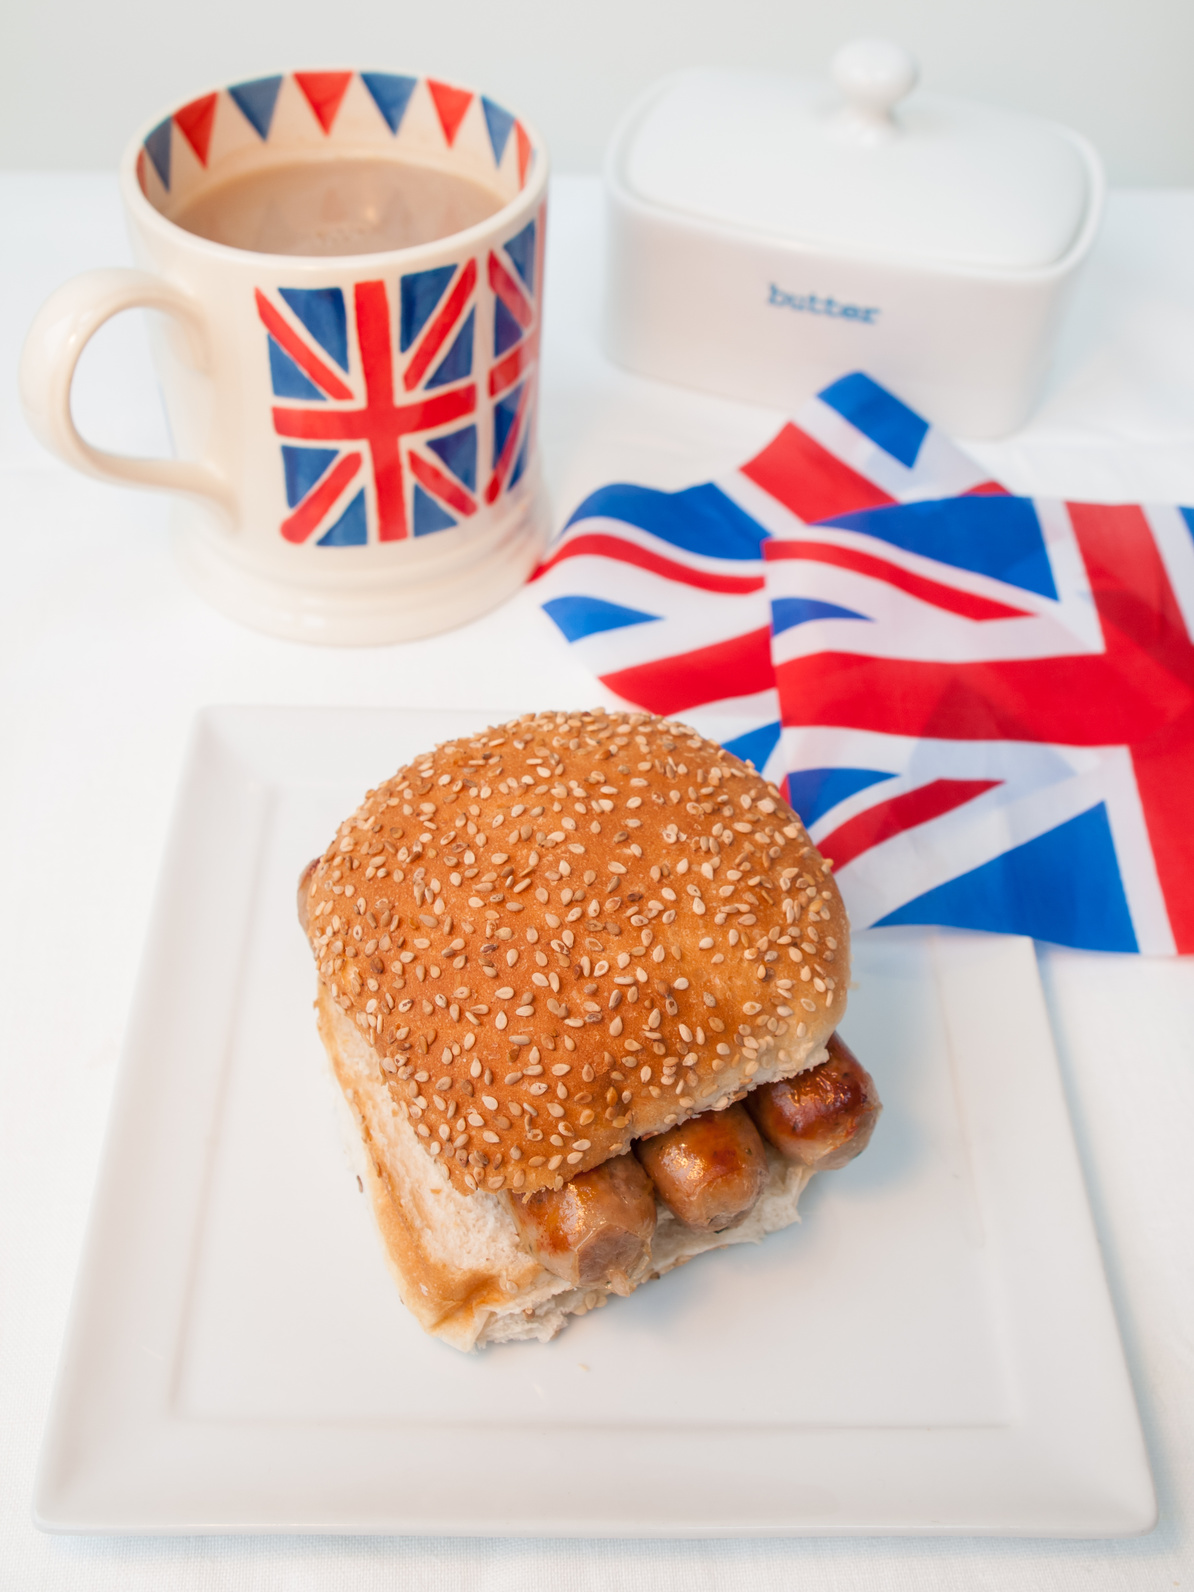 English sausage sandwich with cup of tea in a union jack mug and british union jack flag